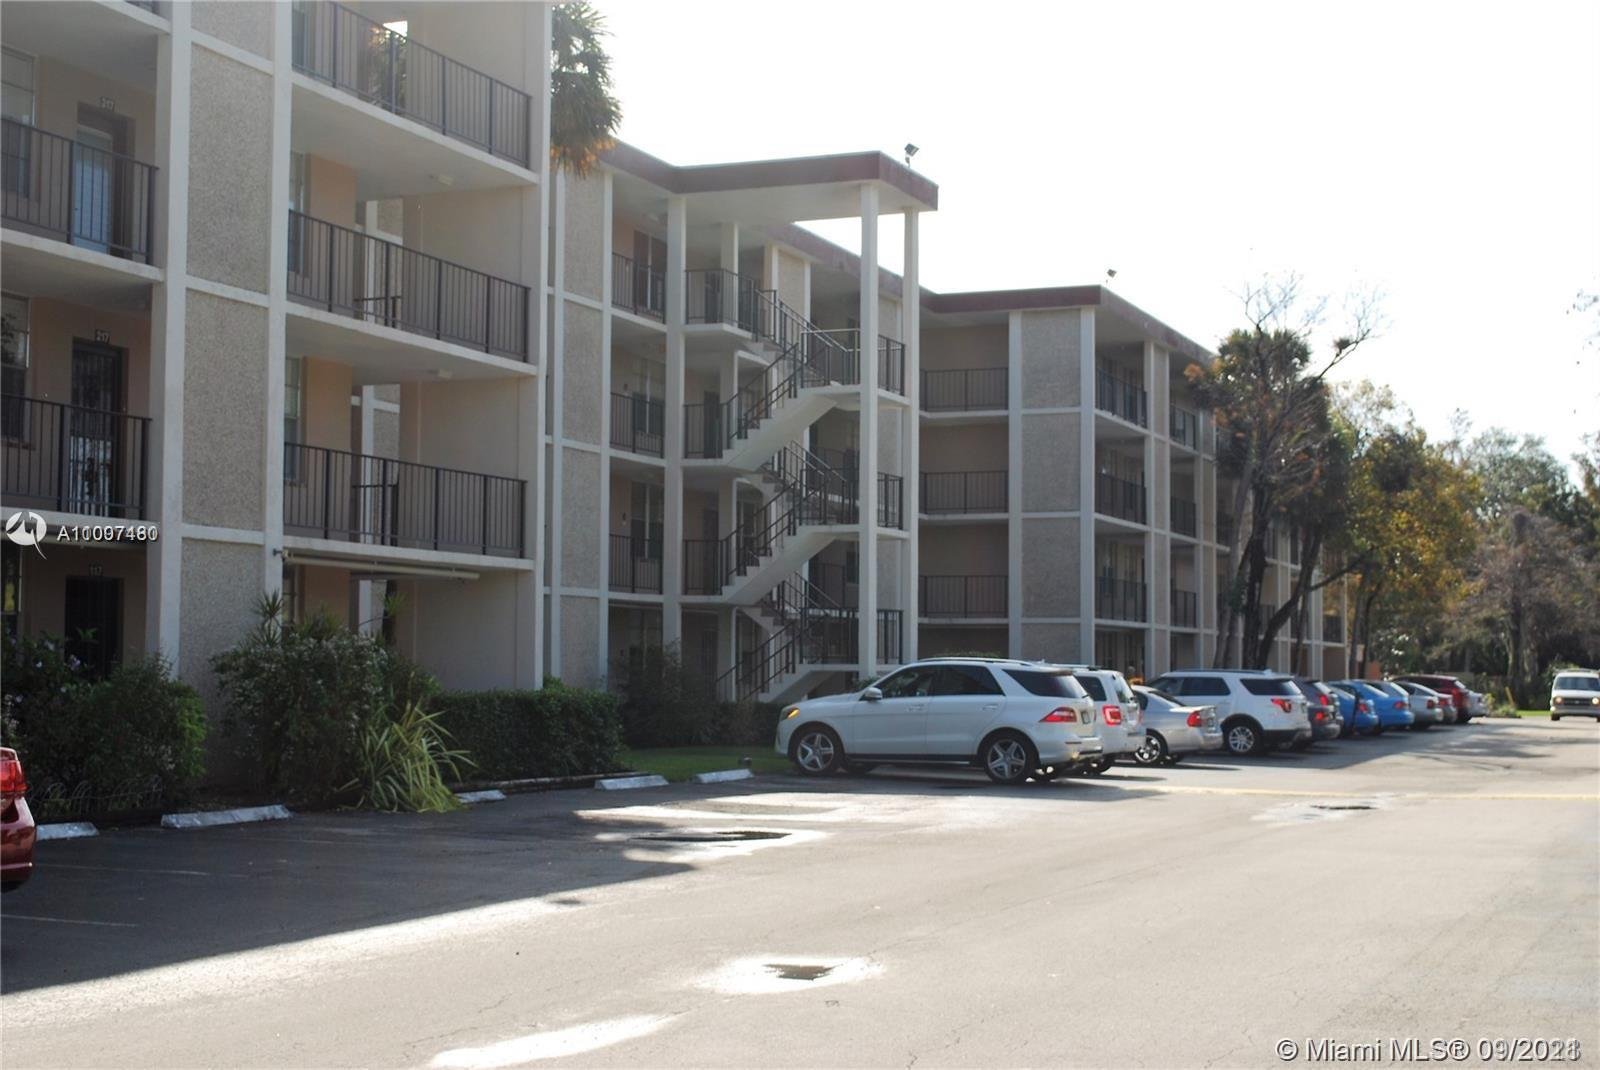 NICE UPDATED 2 BED 2 BATH CONDO WITH GARDEN VIEW. CLOSED IN LANAI FOR EXTRA SPACE, UPDATED KITCHEN AND BATHROOMS, SPACIOUS BEDROOMS, SS APPLIANCES, GRANITE COUNTERTOPS, VIEW TO GARDEN AREA, 55+ COMMUNITY WITH HEATED POOL, MOVE IN READY. NEW A/C, NEWER FLOORING. COMPLEX GETTING REPAVED AND FENCED